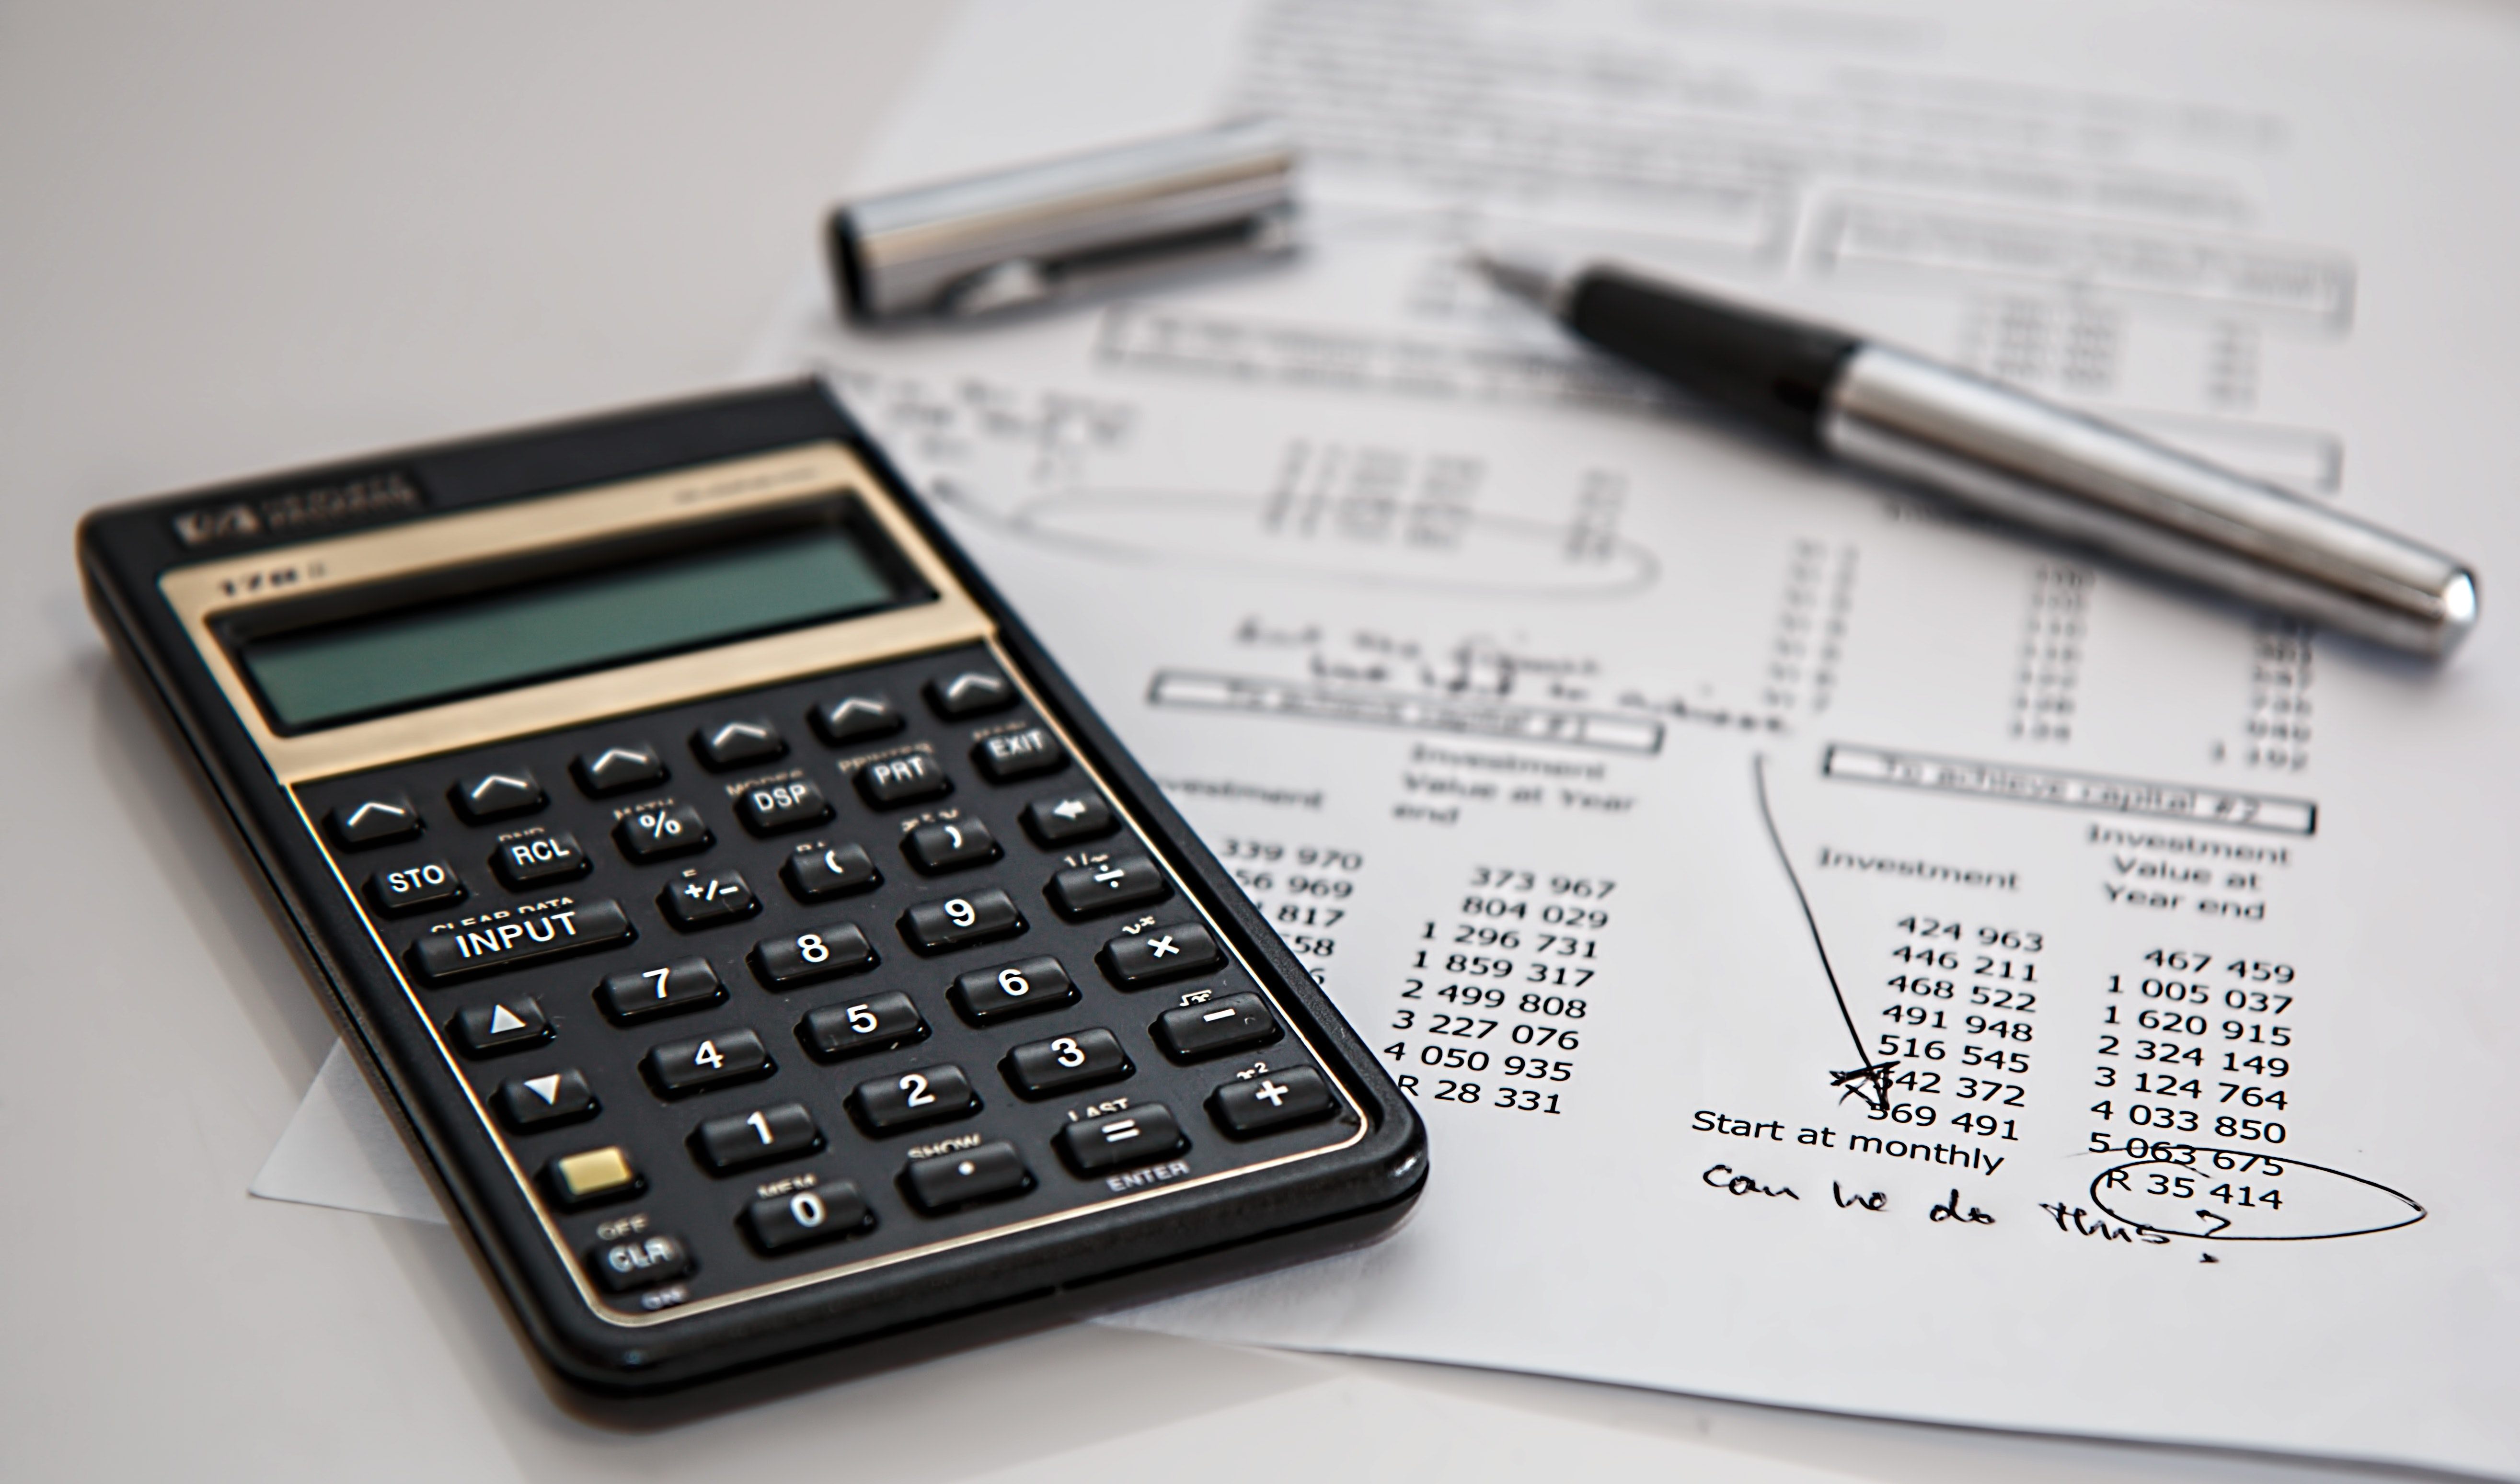 invoices sense in numbers